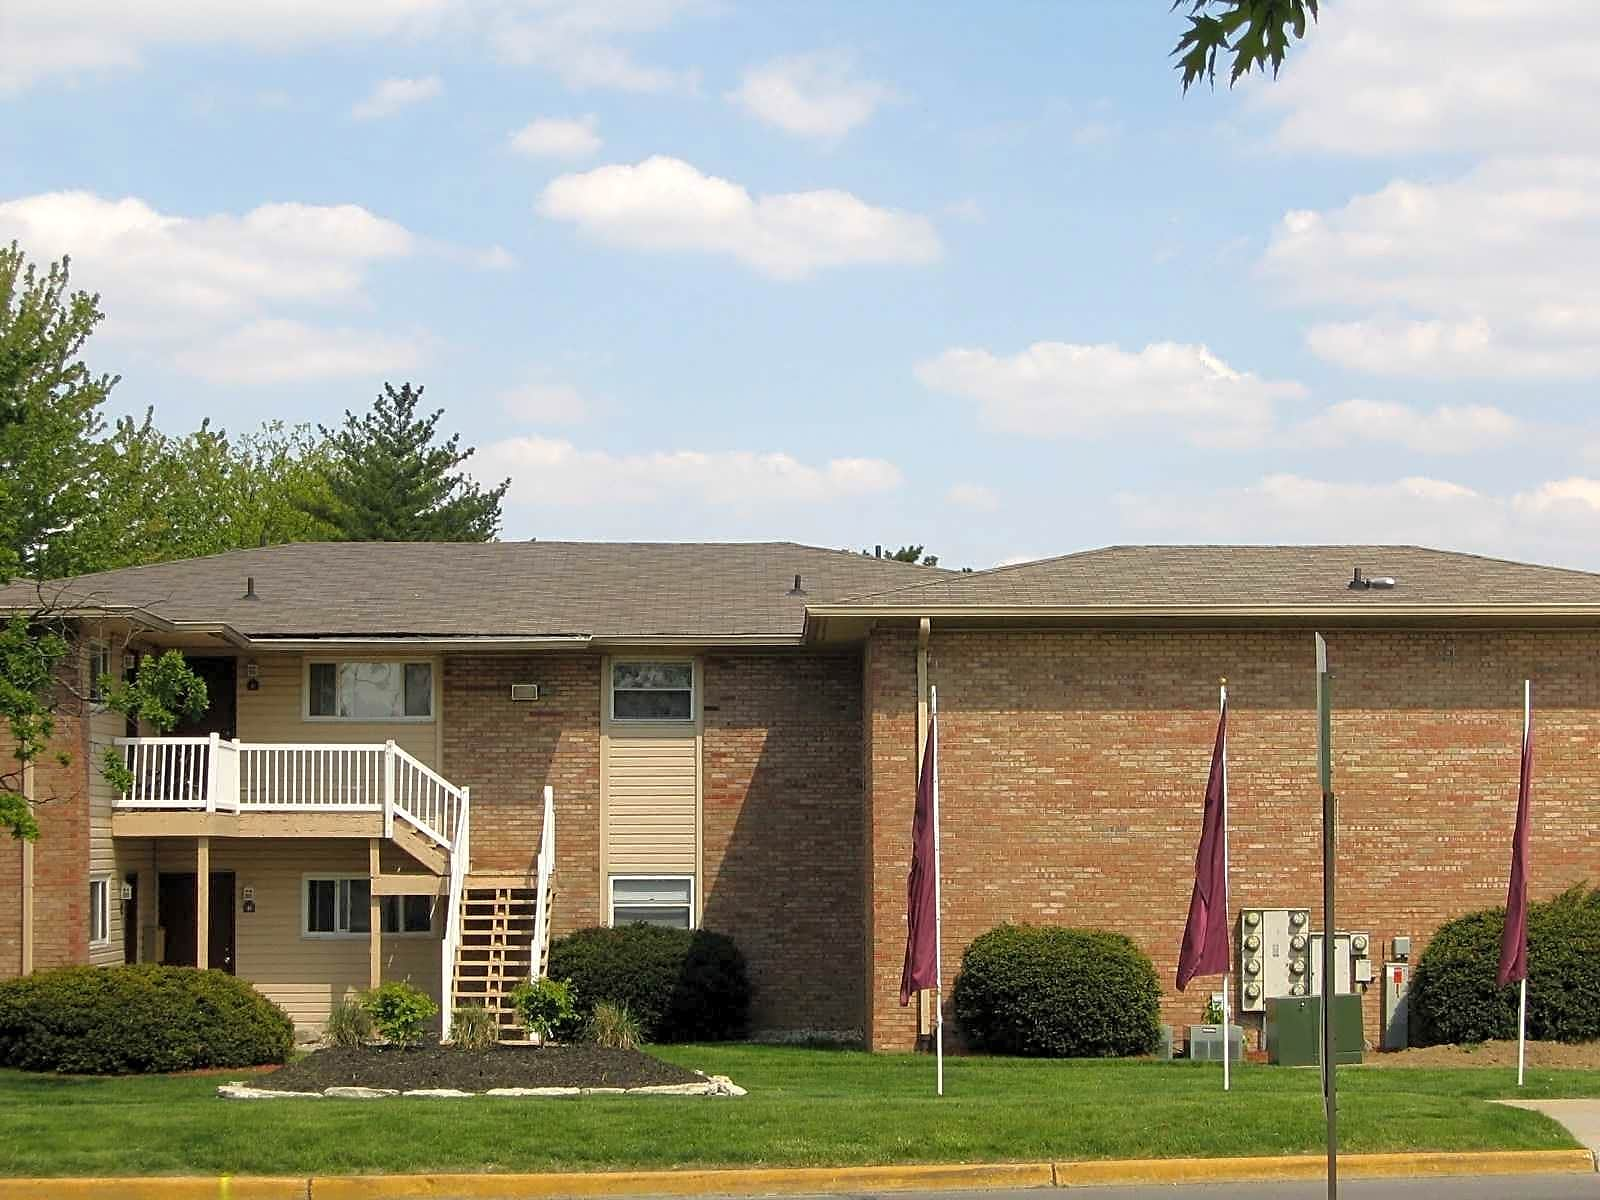 Apartments and Houses for Rent Near Me in Indianapolis, IN